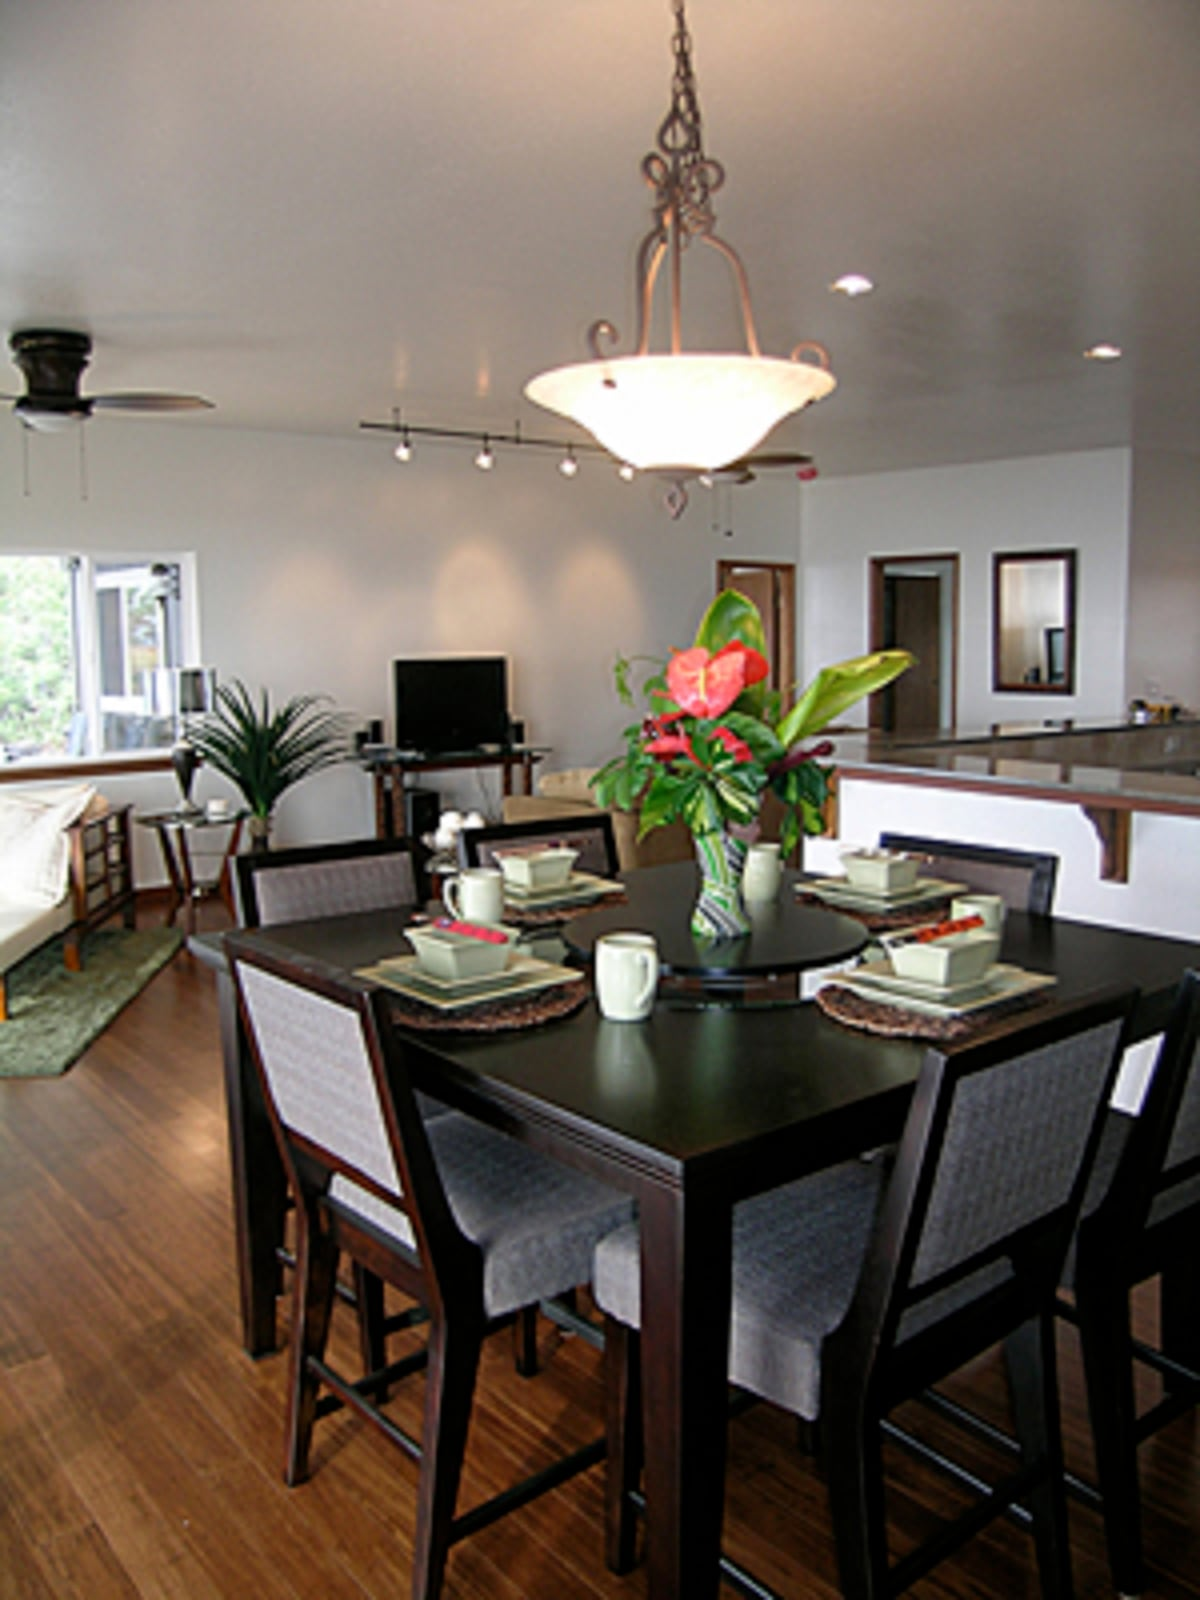 Dine with gorgeous ocean views, seats 6 plus dining table on lanai seats 4.